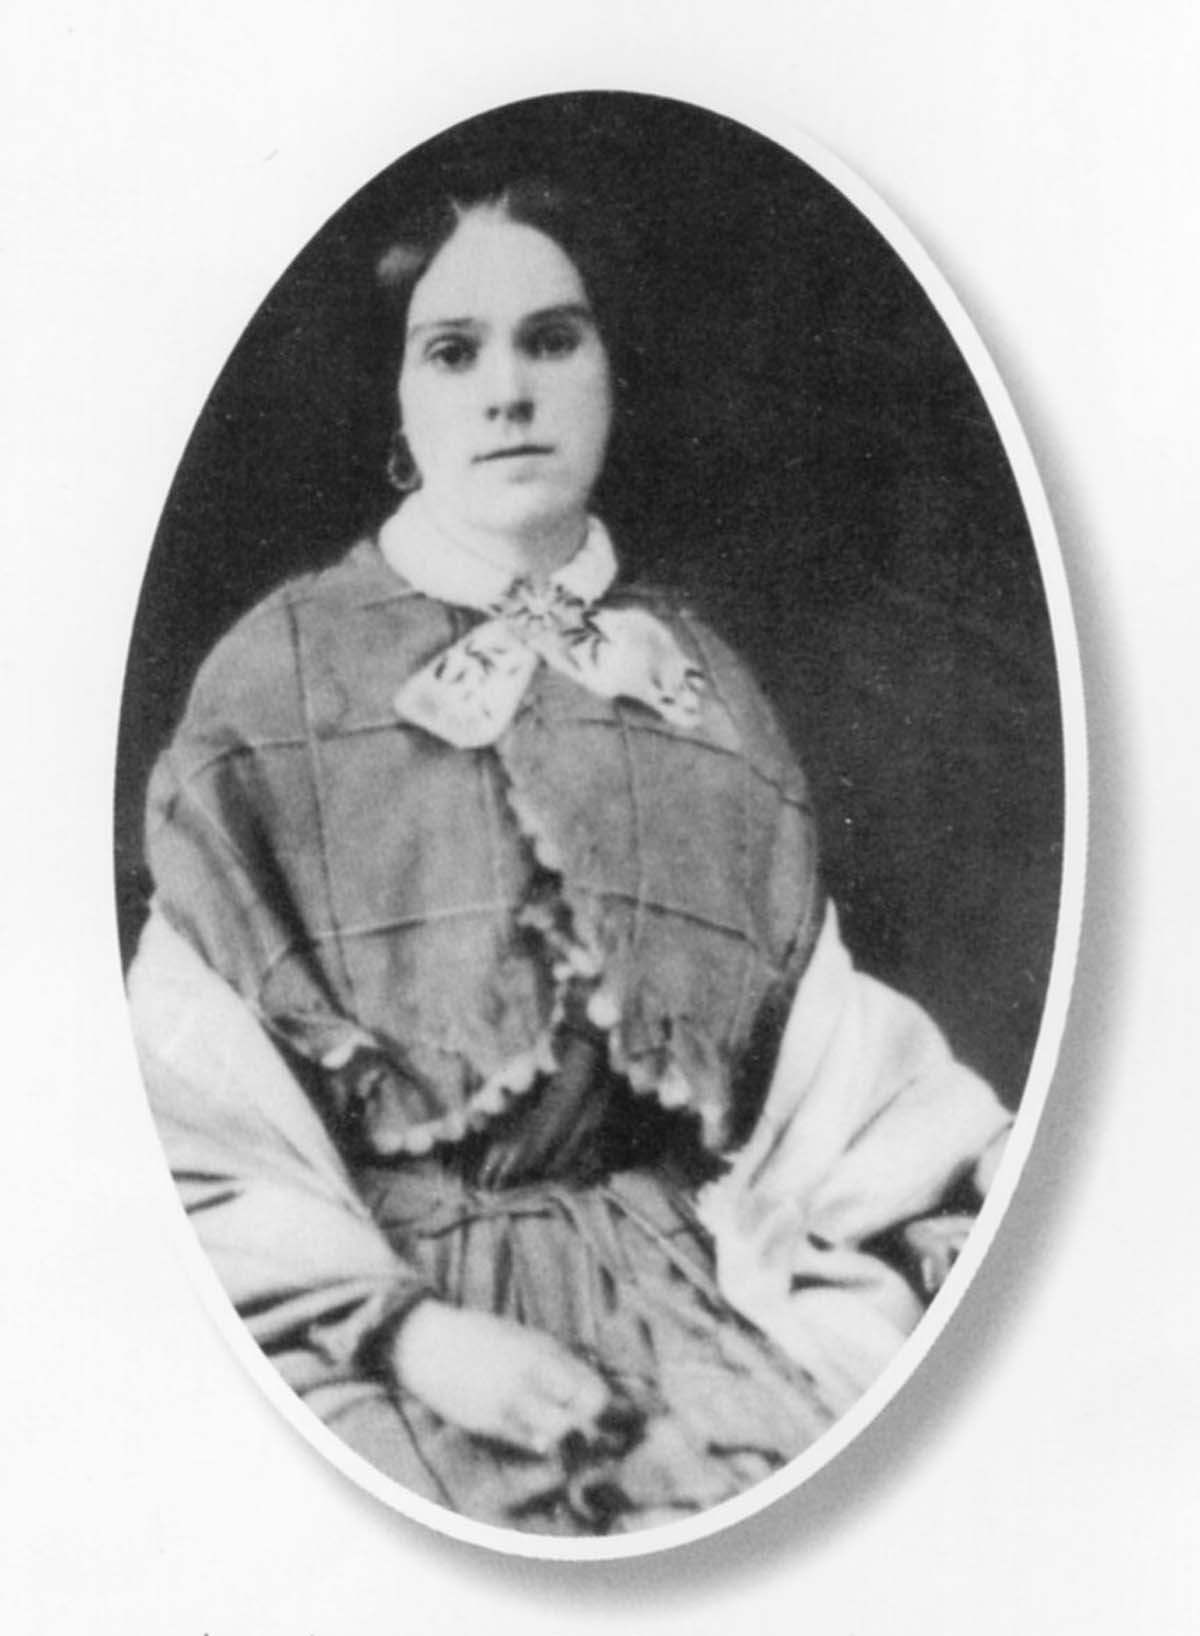 Lucy Ann Leathers Burdsall (1825-1873). Photo courtesy of Donna Kennedy.